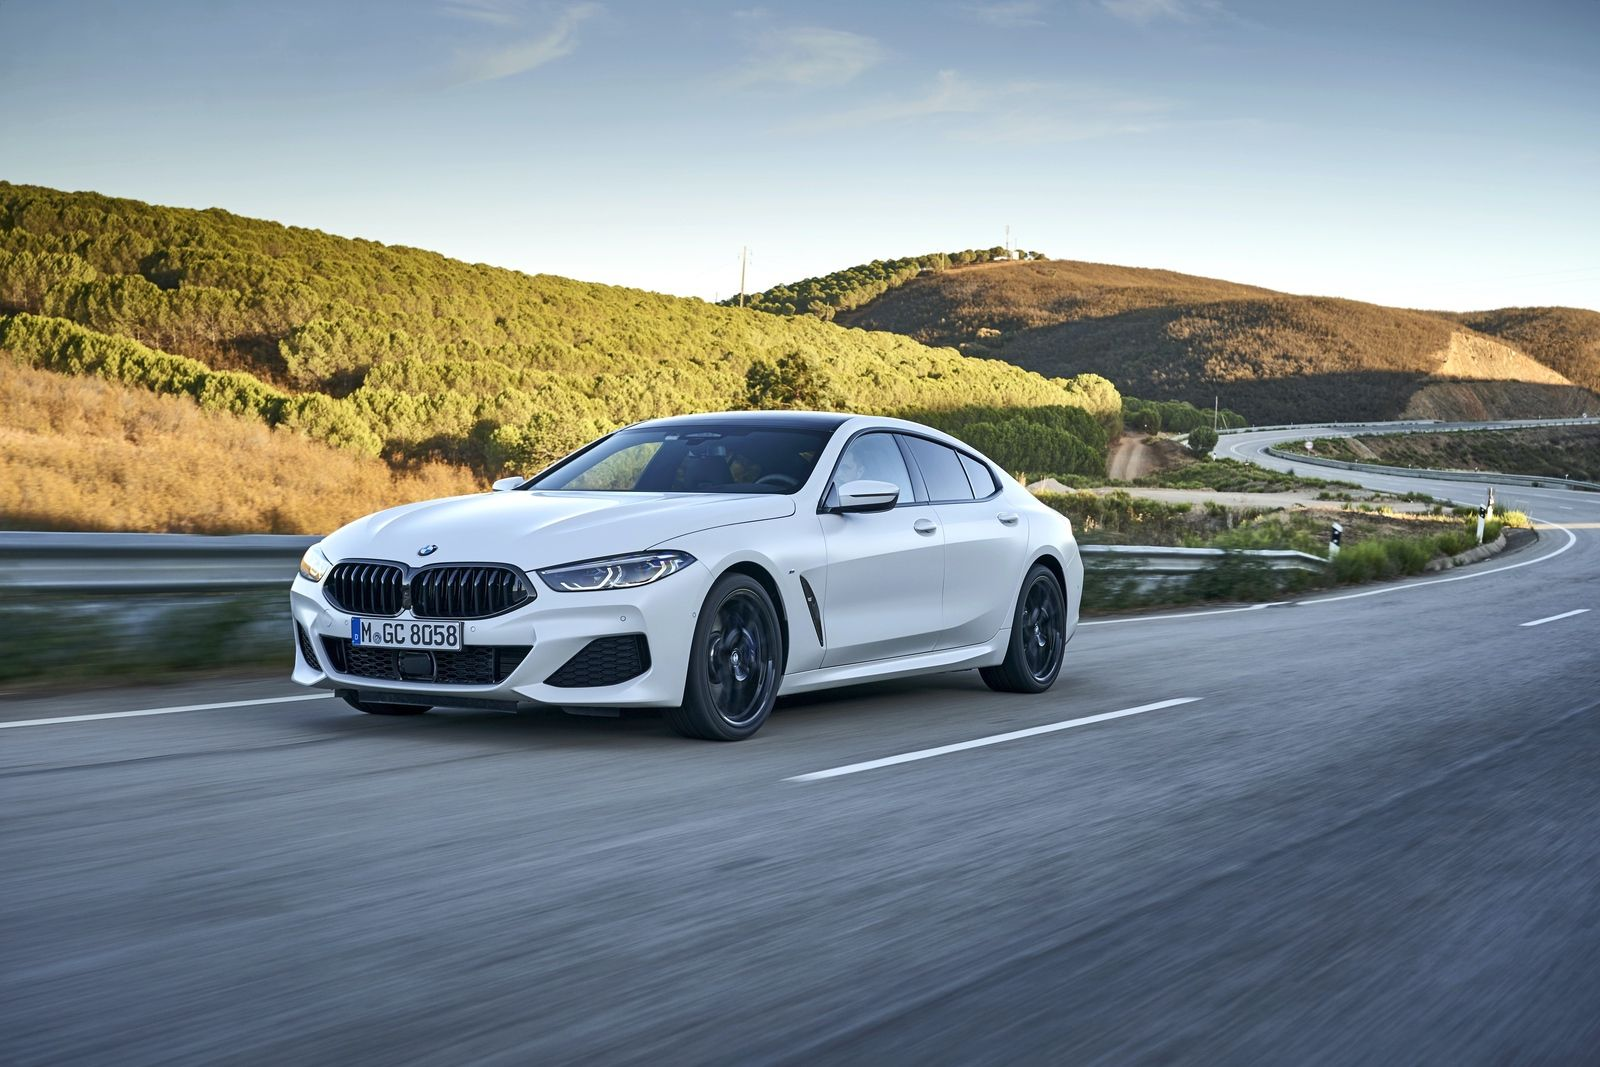 Review 2020 Bmw 840i Gran Coupe Practical And Stylish Bmw 840i Gran Coupe Bmw